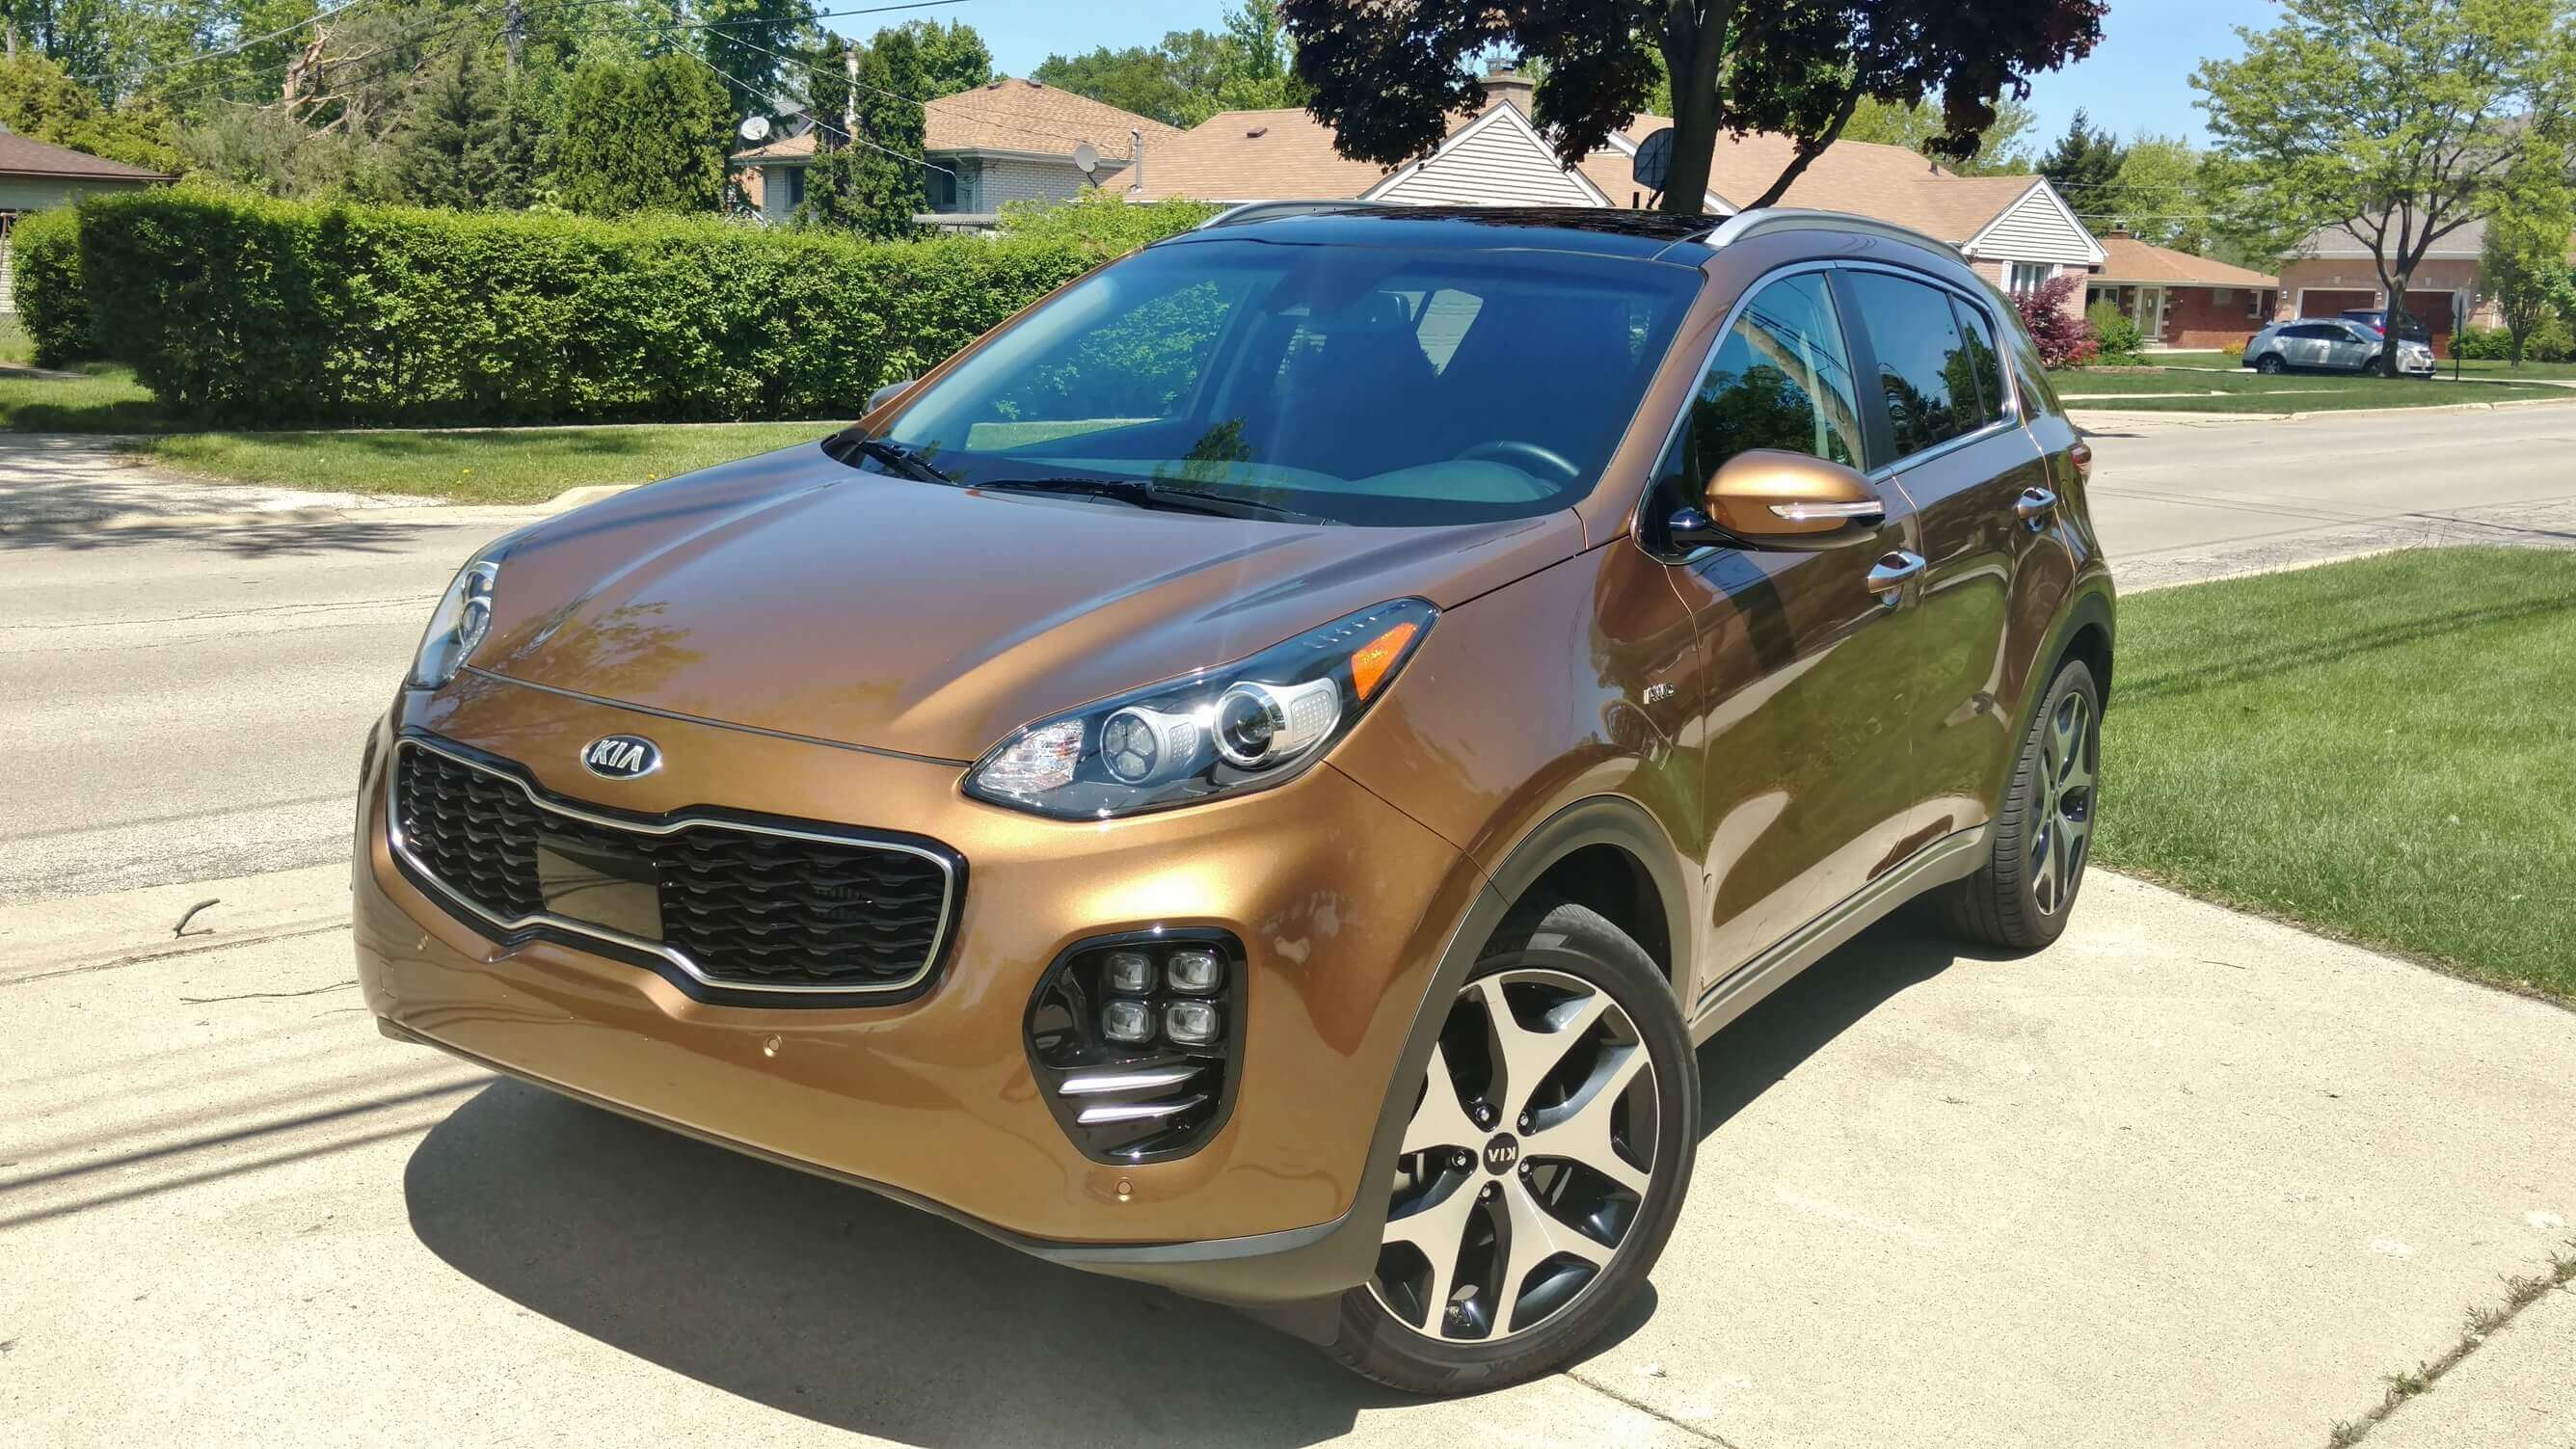 2017 kia sportage sx turbo awd quick review roadblazing. Black Bedroom Furniture Sets. Home Design Ideas